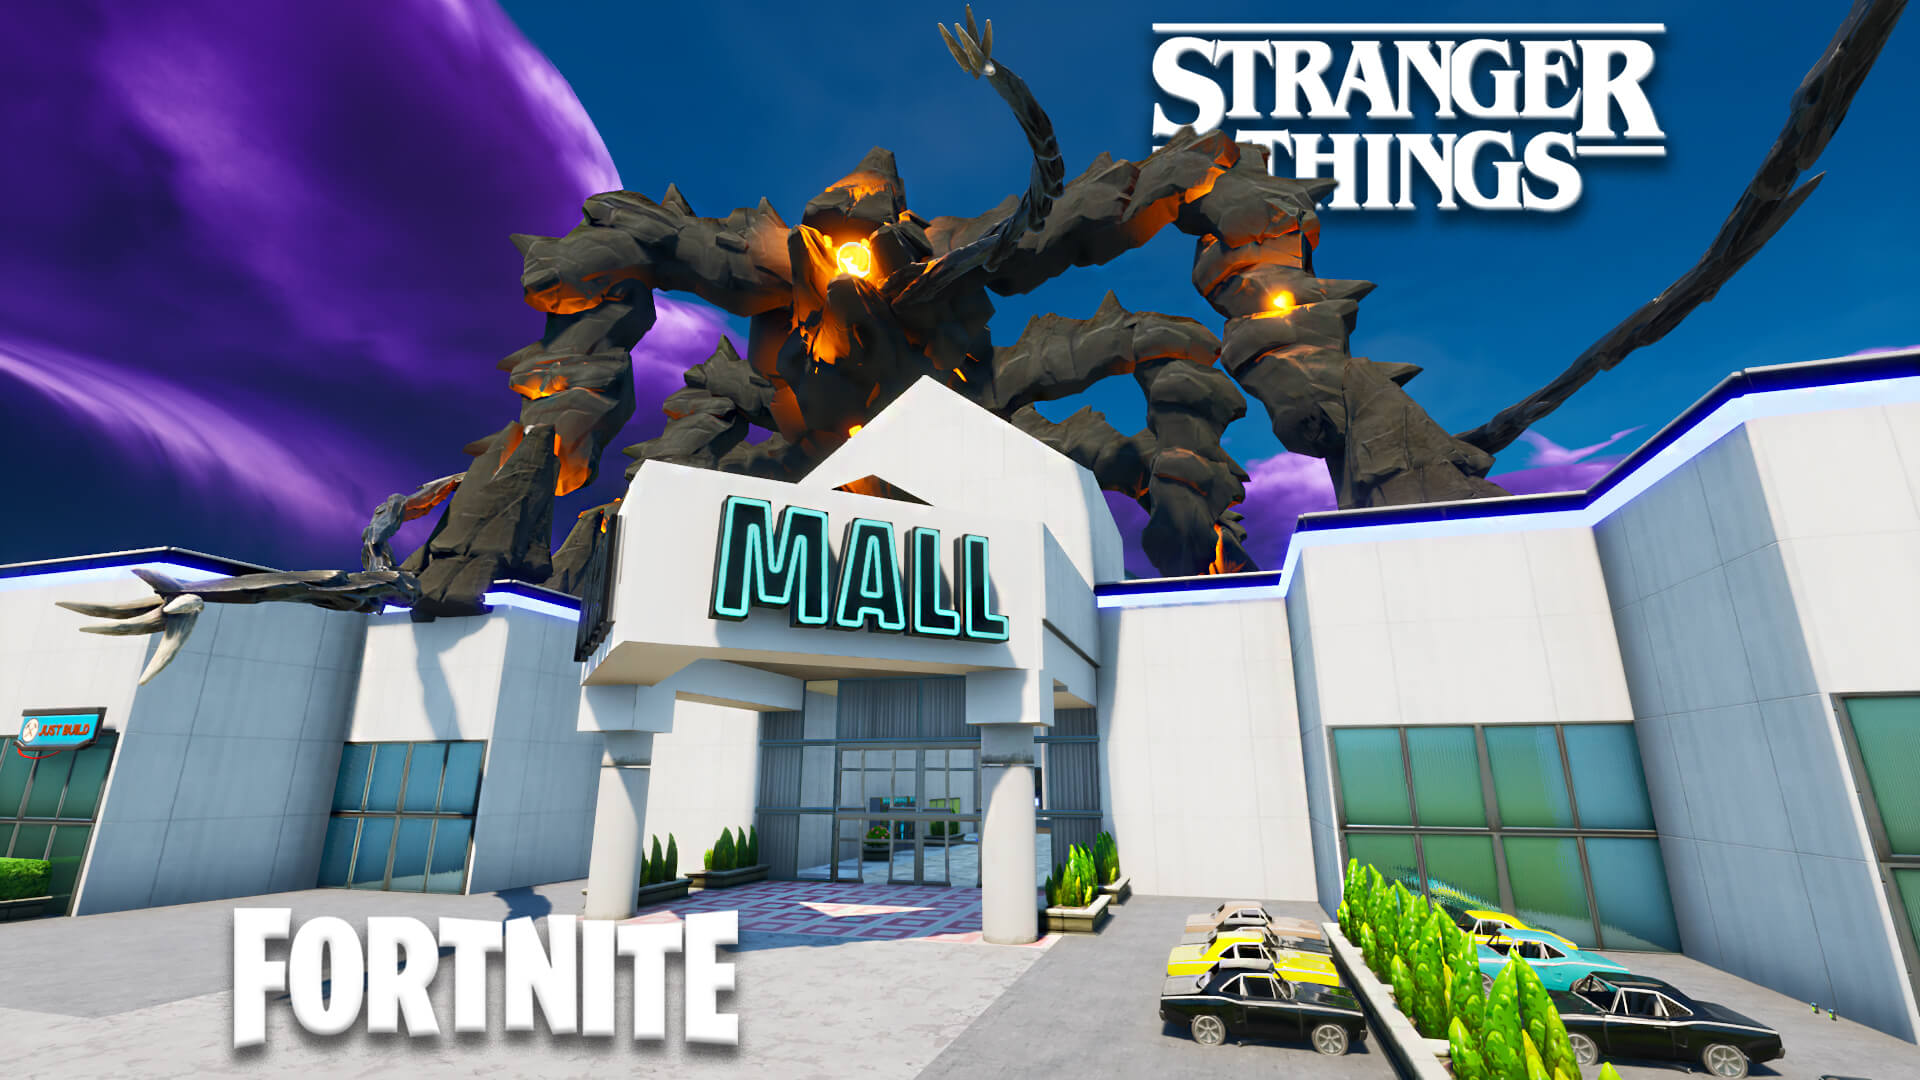 STRANGER THINGS STARCOURT MALL DEATHRUN